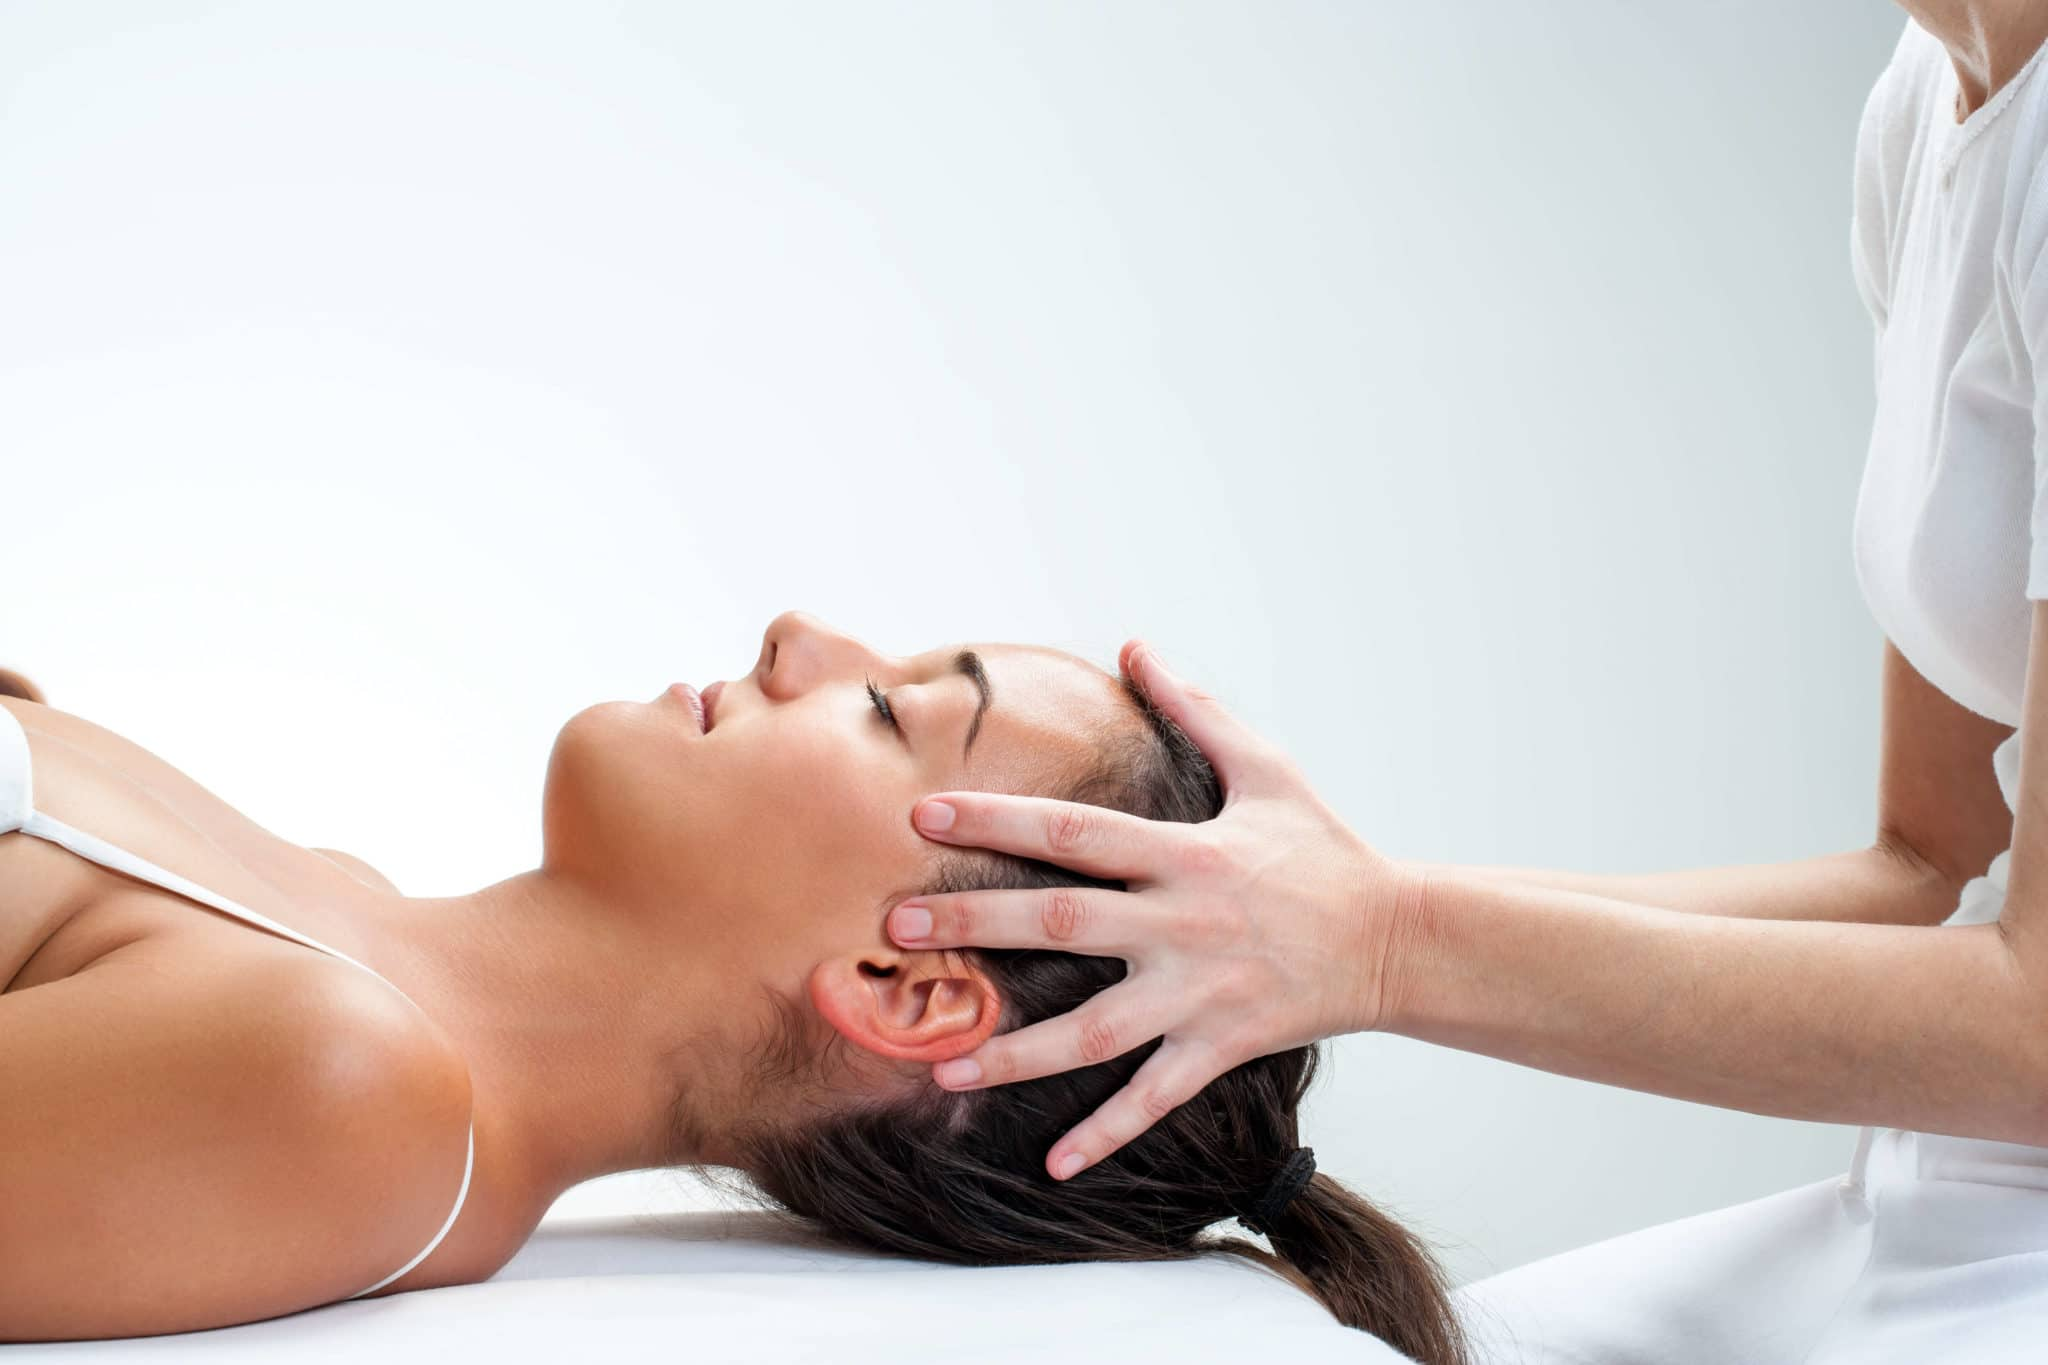 chiropractor for back pain, What Can I Expect When I Visit a Chiropractor?